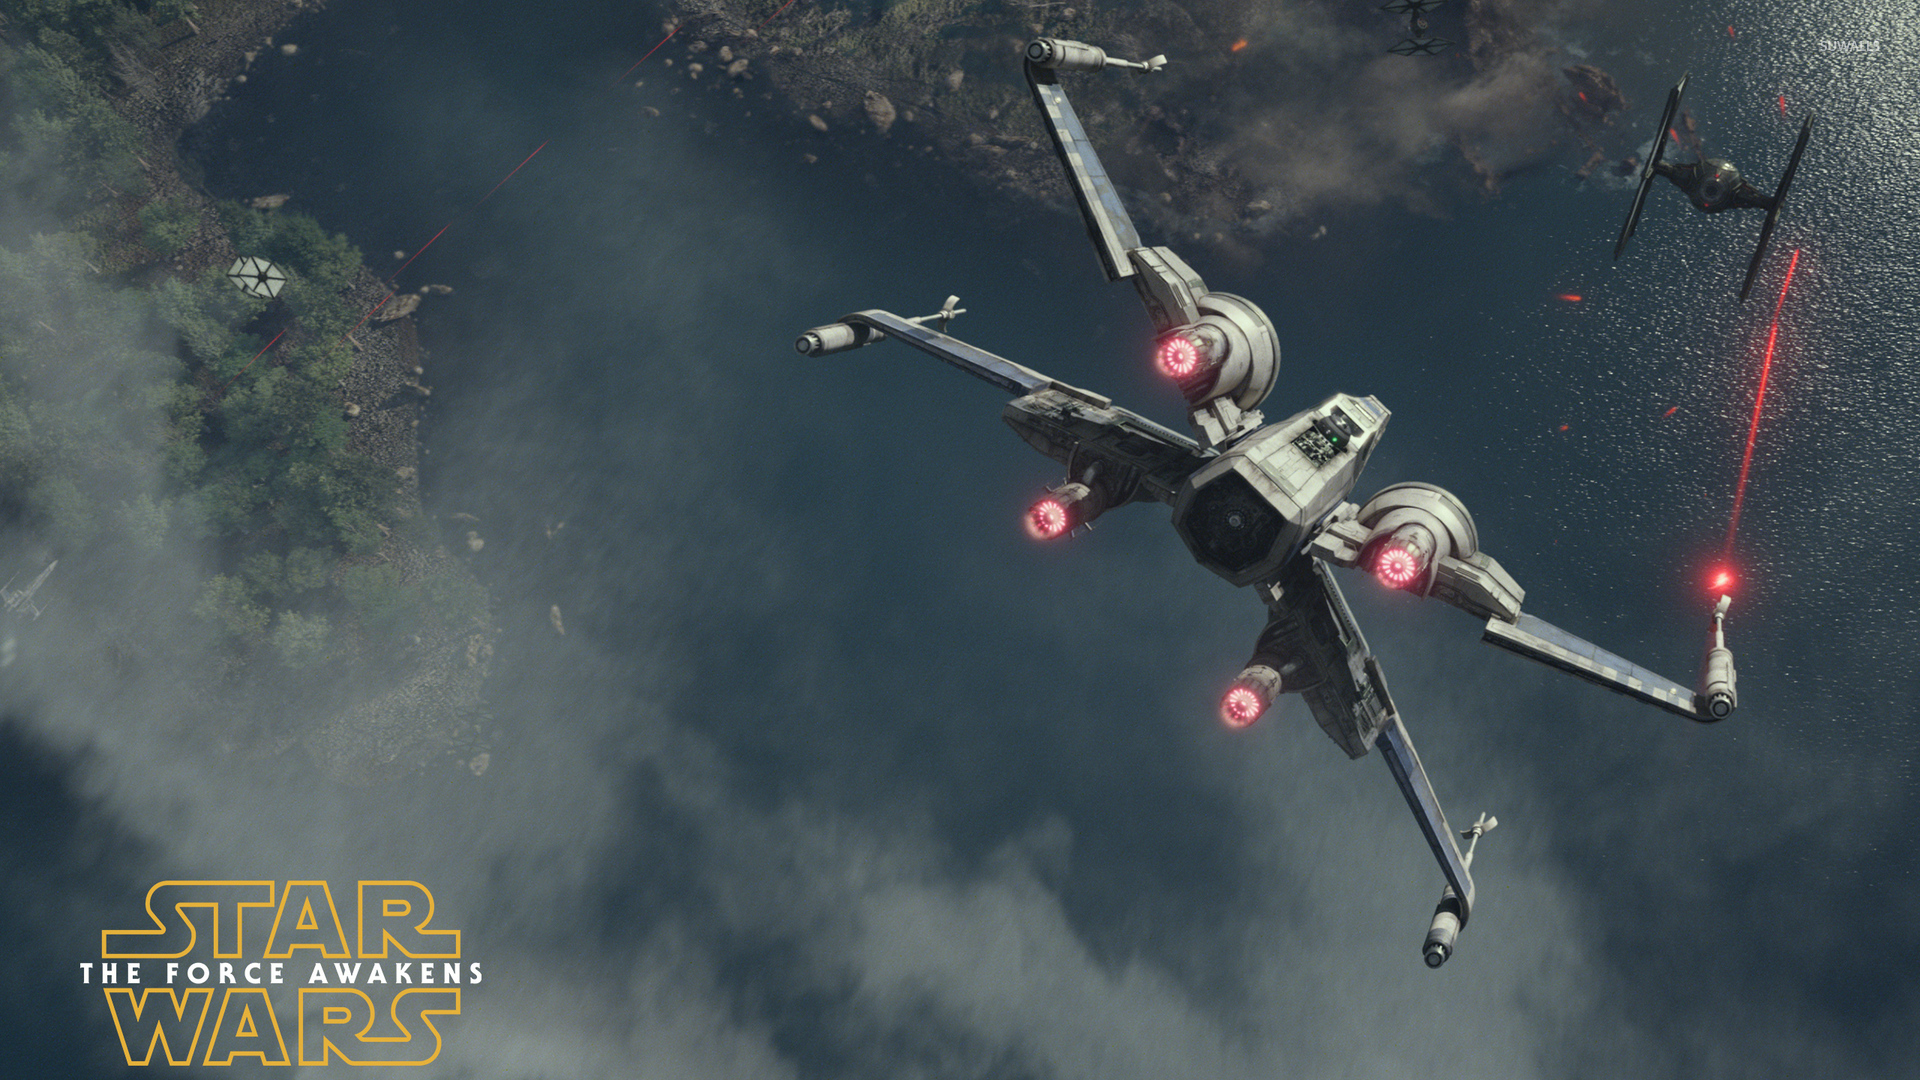 T-65 X-wing starfighter - Star Wars: The Force Awakens ...